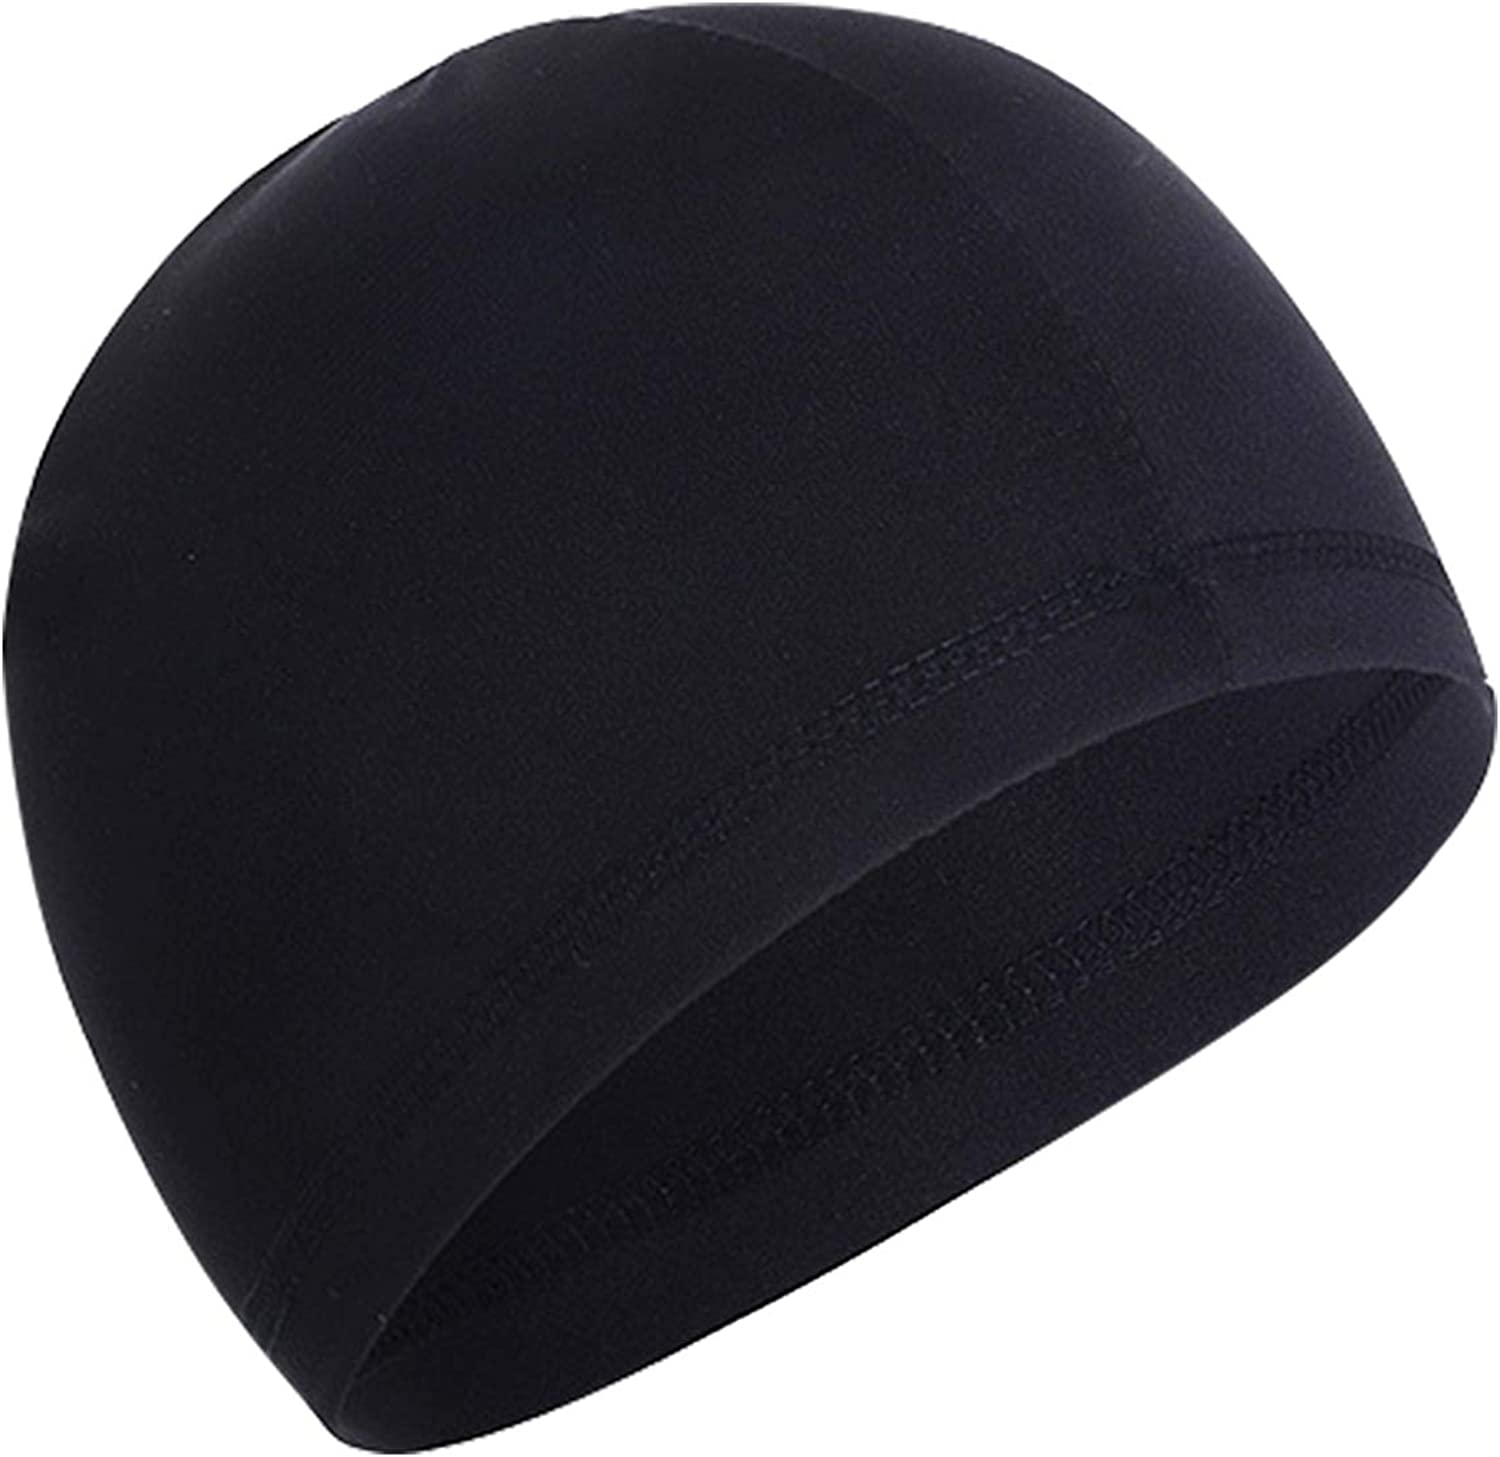 Lightweight famous Cooling Skull Caps Cycling Sweat Liner Wick Helmet safety